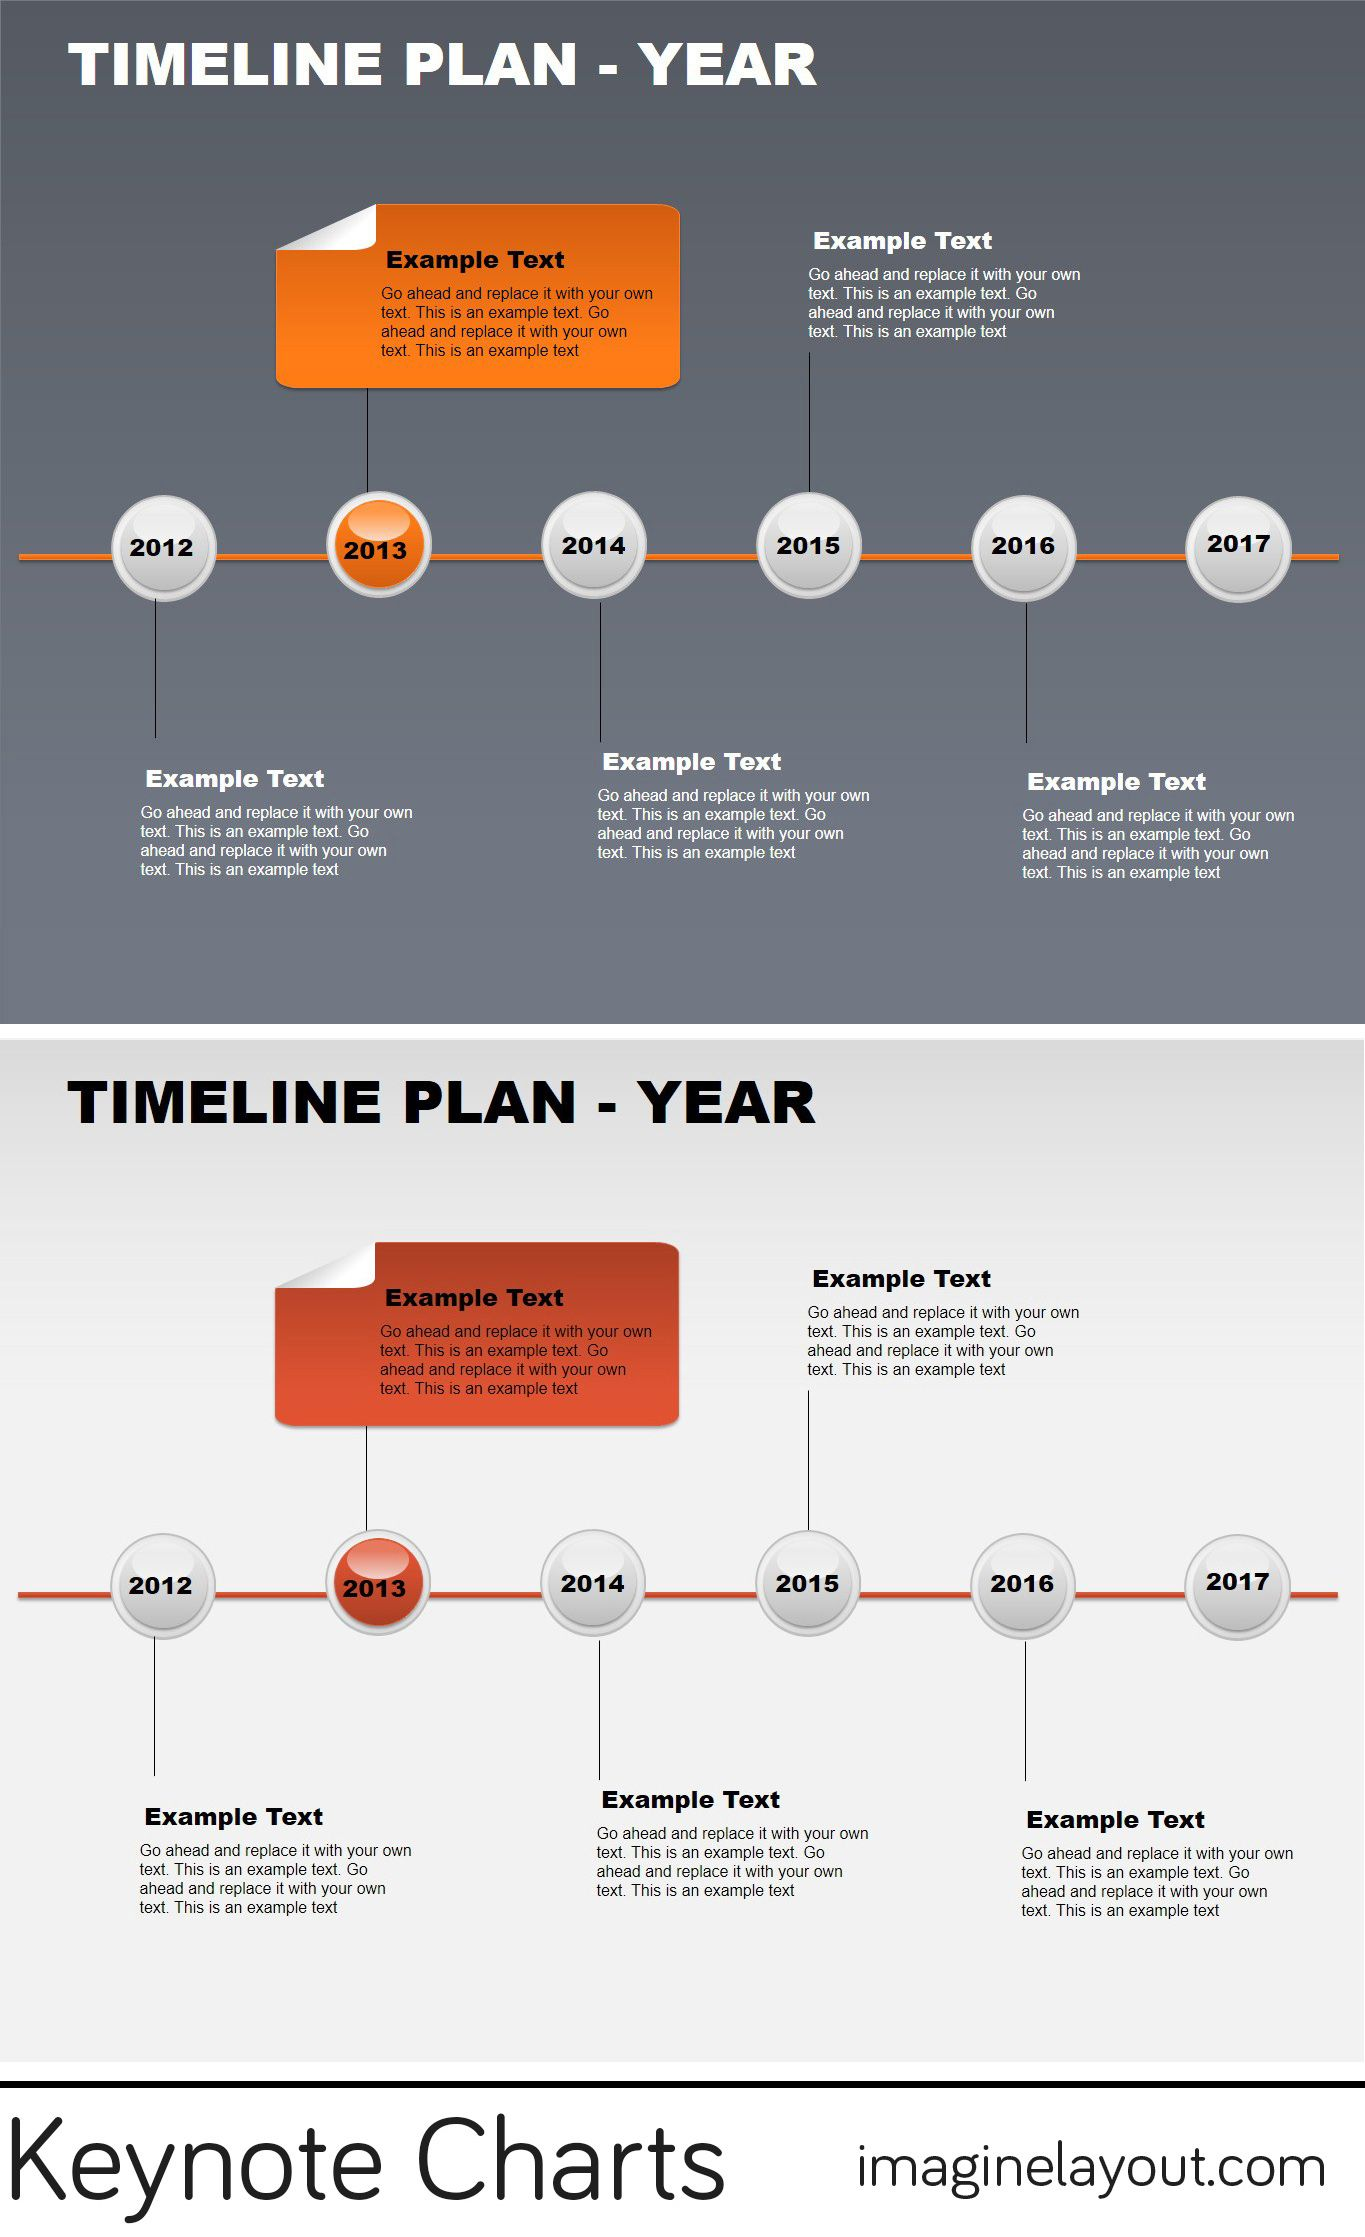 Download TimeLine Plan Year Free Keynote charts templates | Free ...